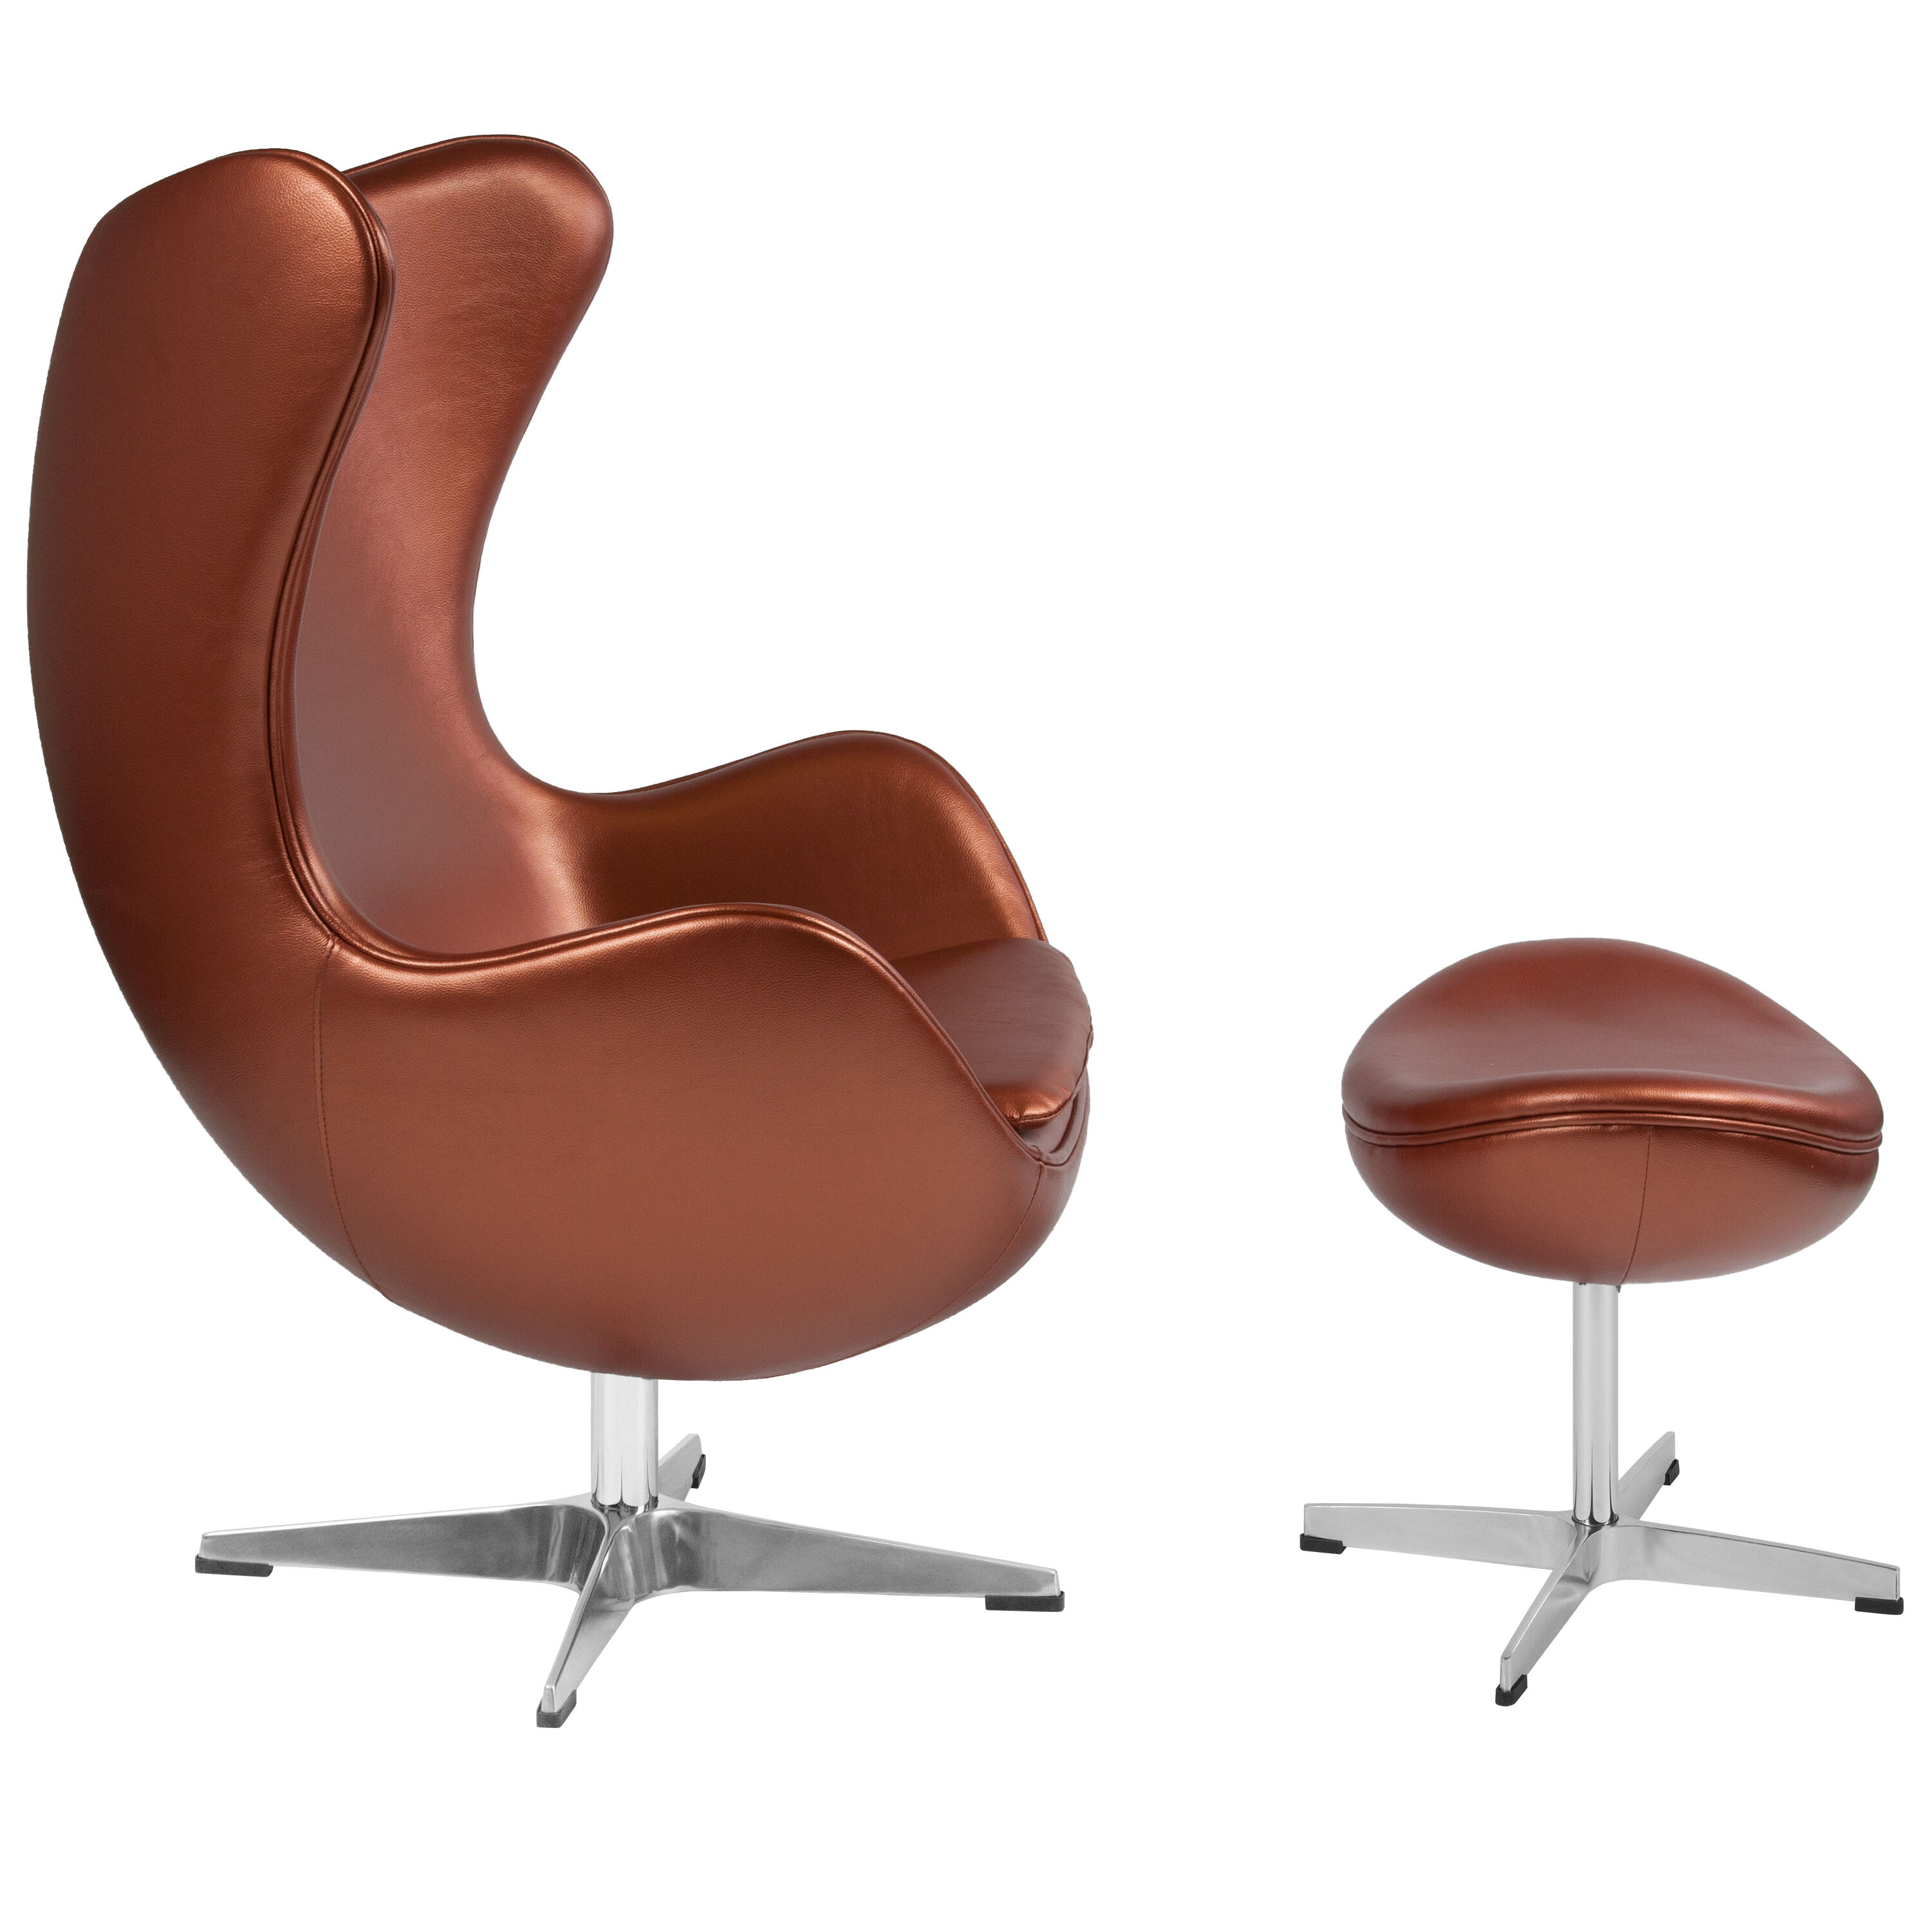 ... Our Copper Leather Egg Chair With Tilt Lock Mechanism And Ottoman Is On  Sale Now ...